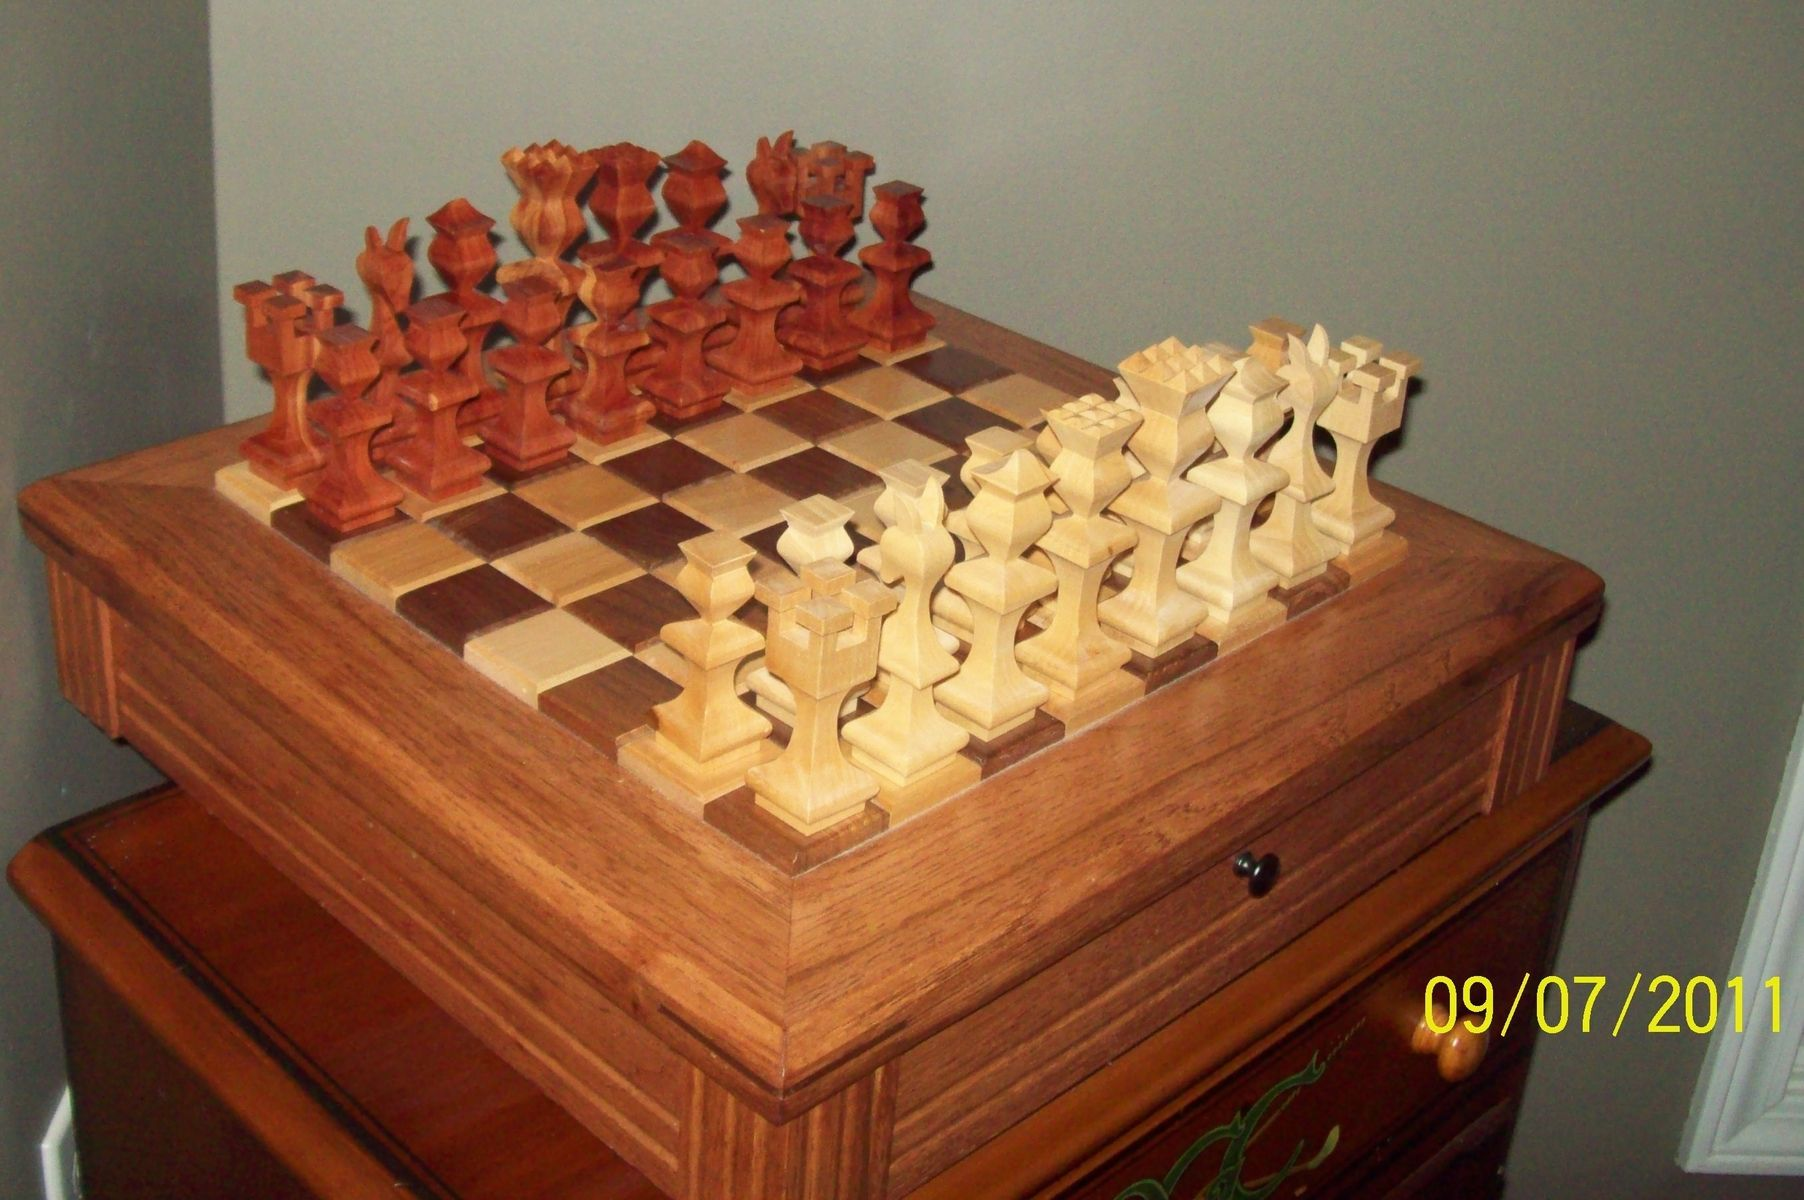 Personalized Chess Set Gift Hand Made Chess Board With Pieces By 4bz Customs